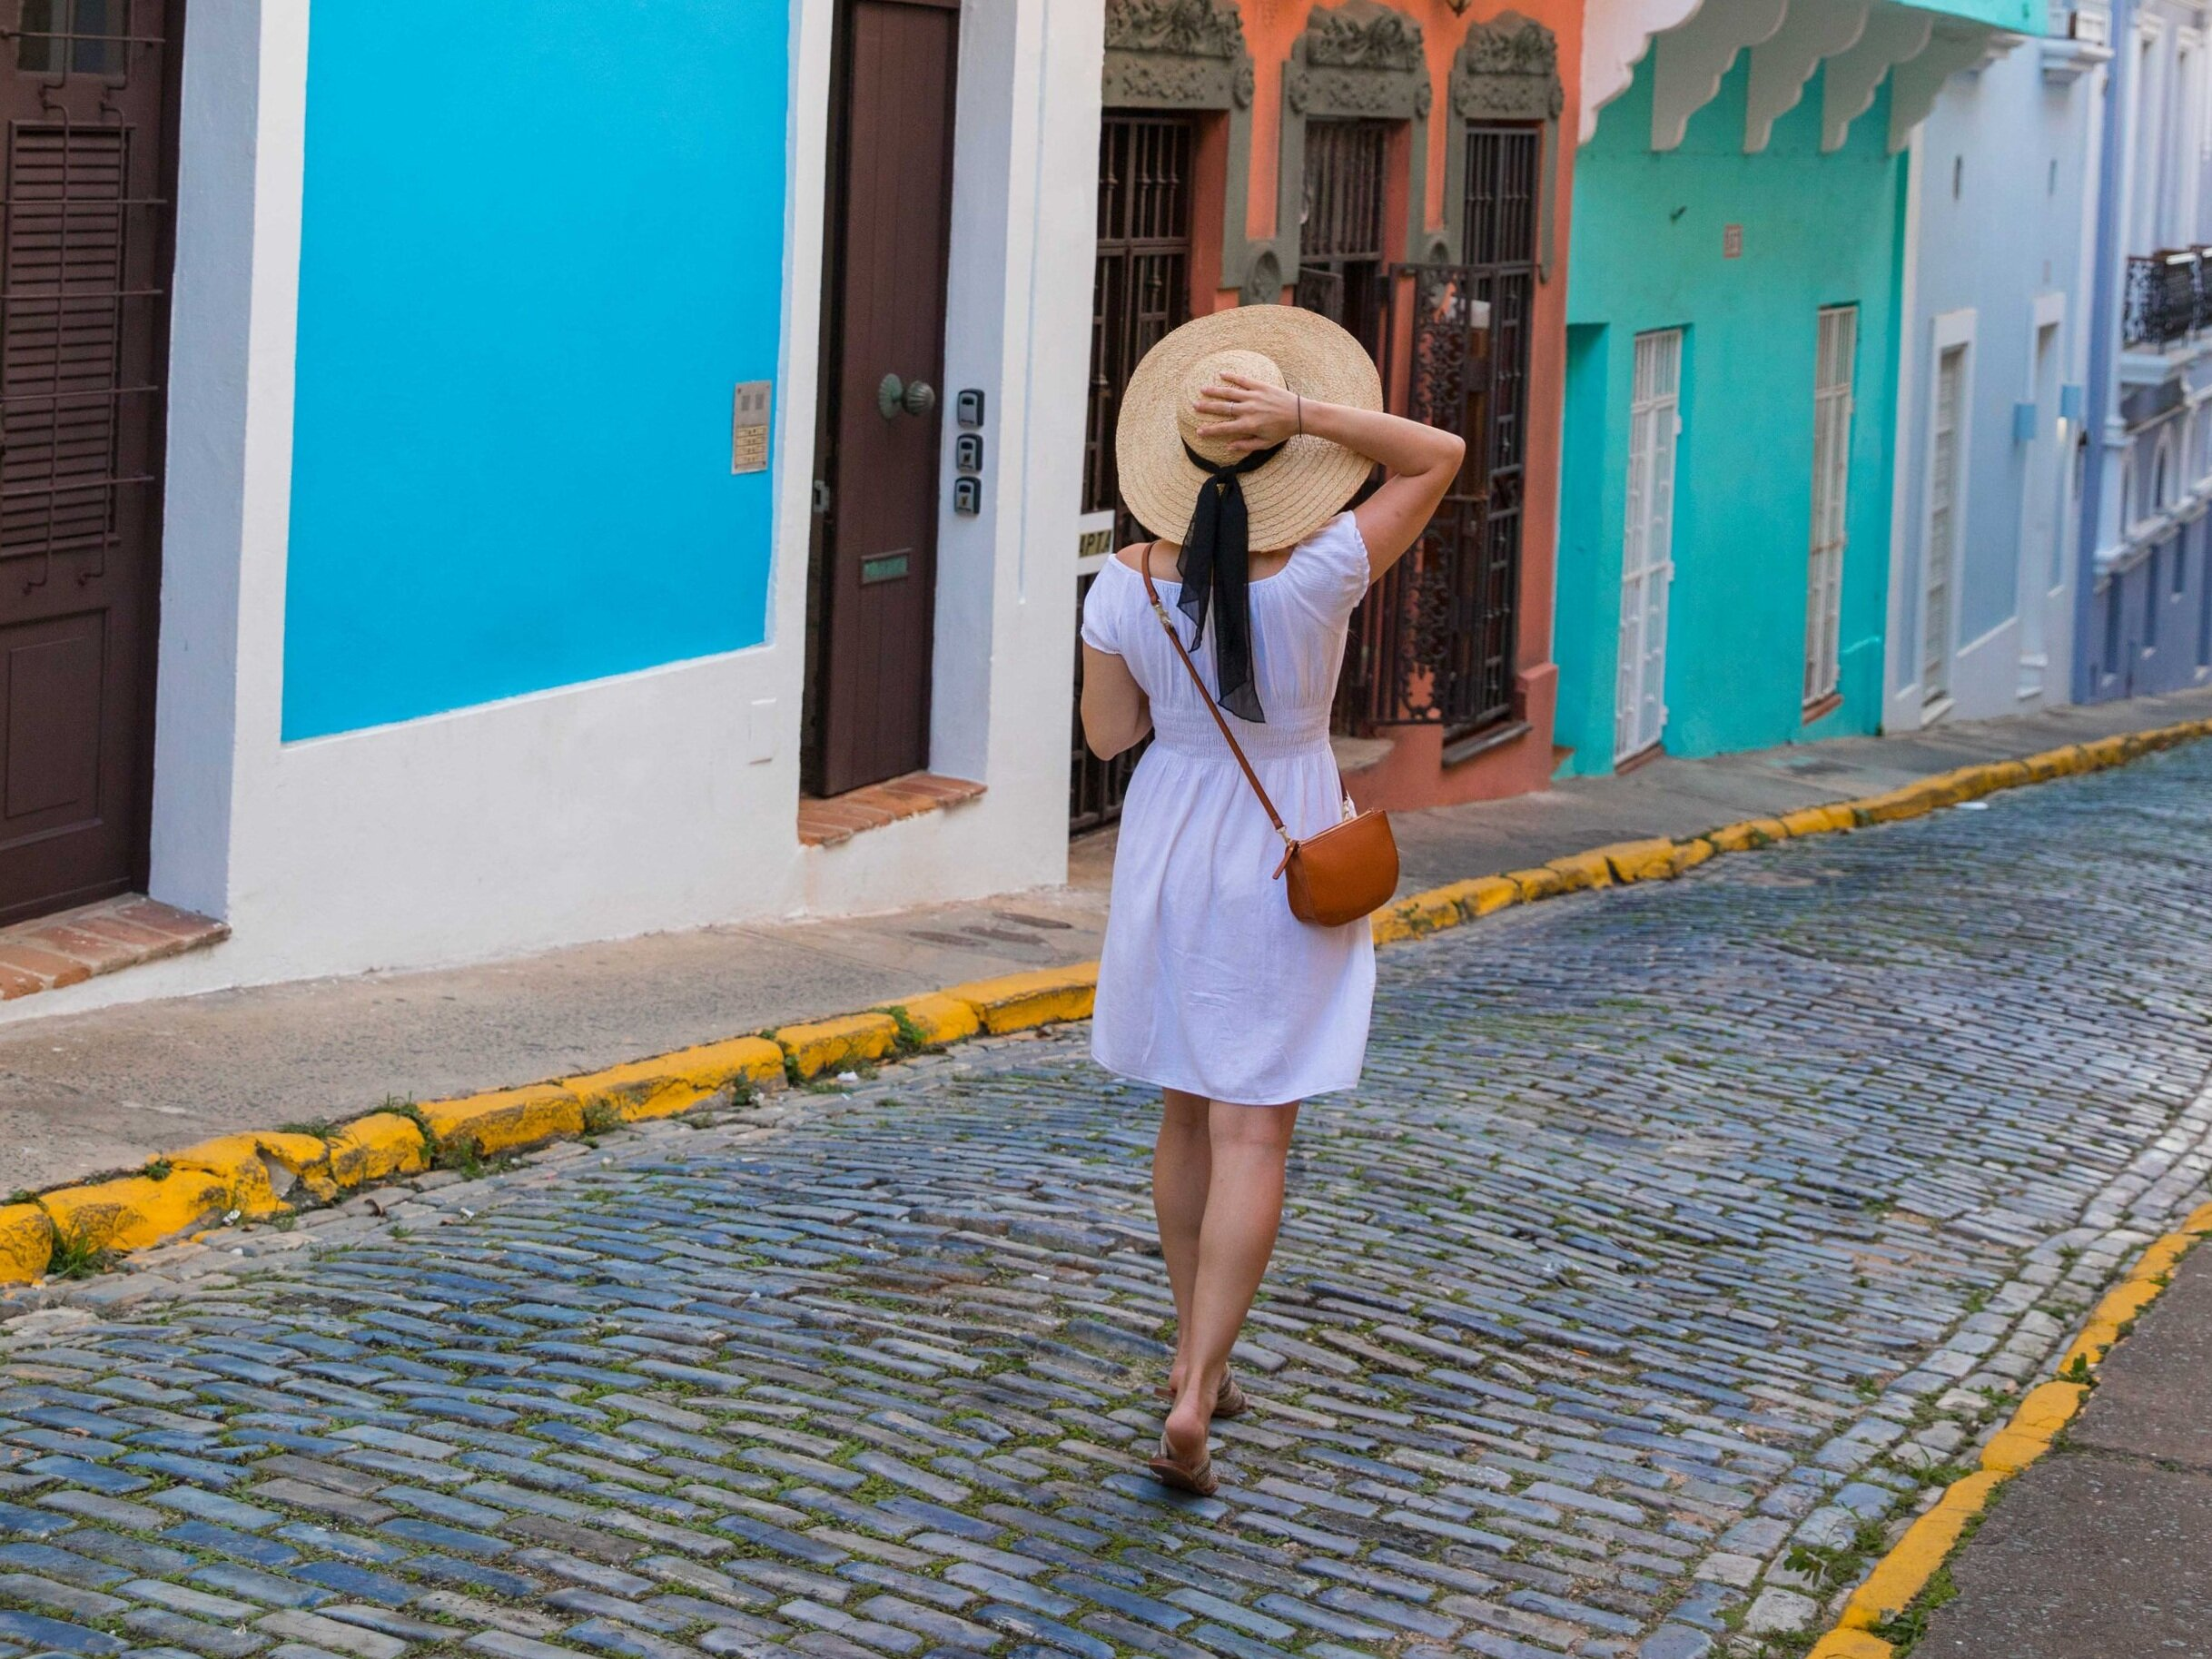 Traveling in Puerto Rico with my Waverly Cross Body Bag by Lo & Sons. They make the best camera bags for women, as well!